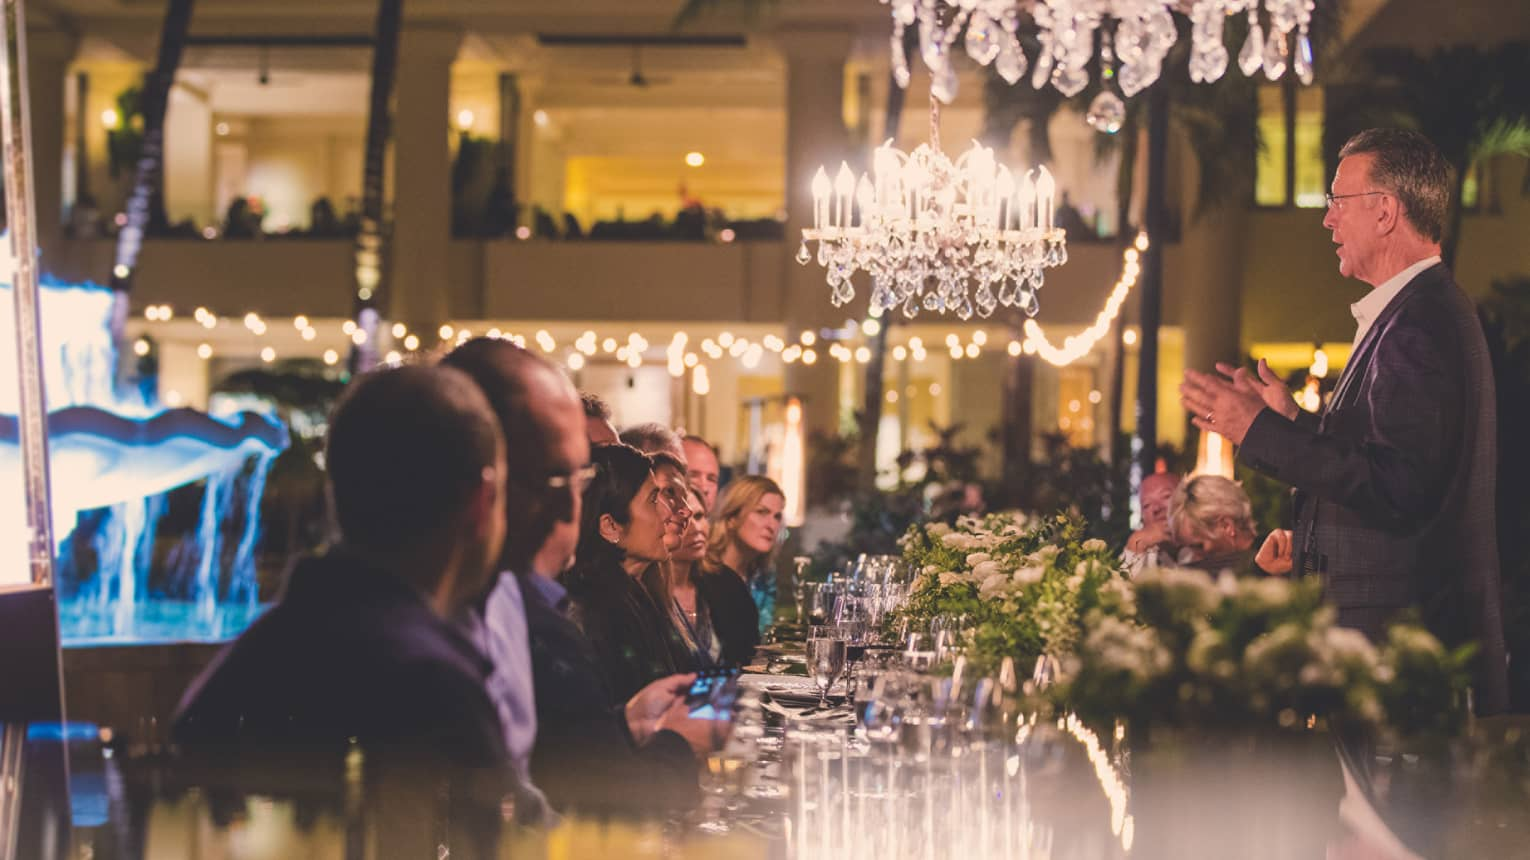 Guests seated at a bar underneath crystal chandeliers listen attentively to a wine sommelier